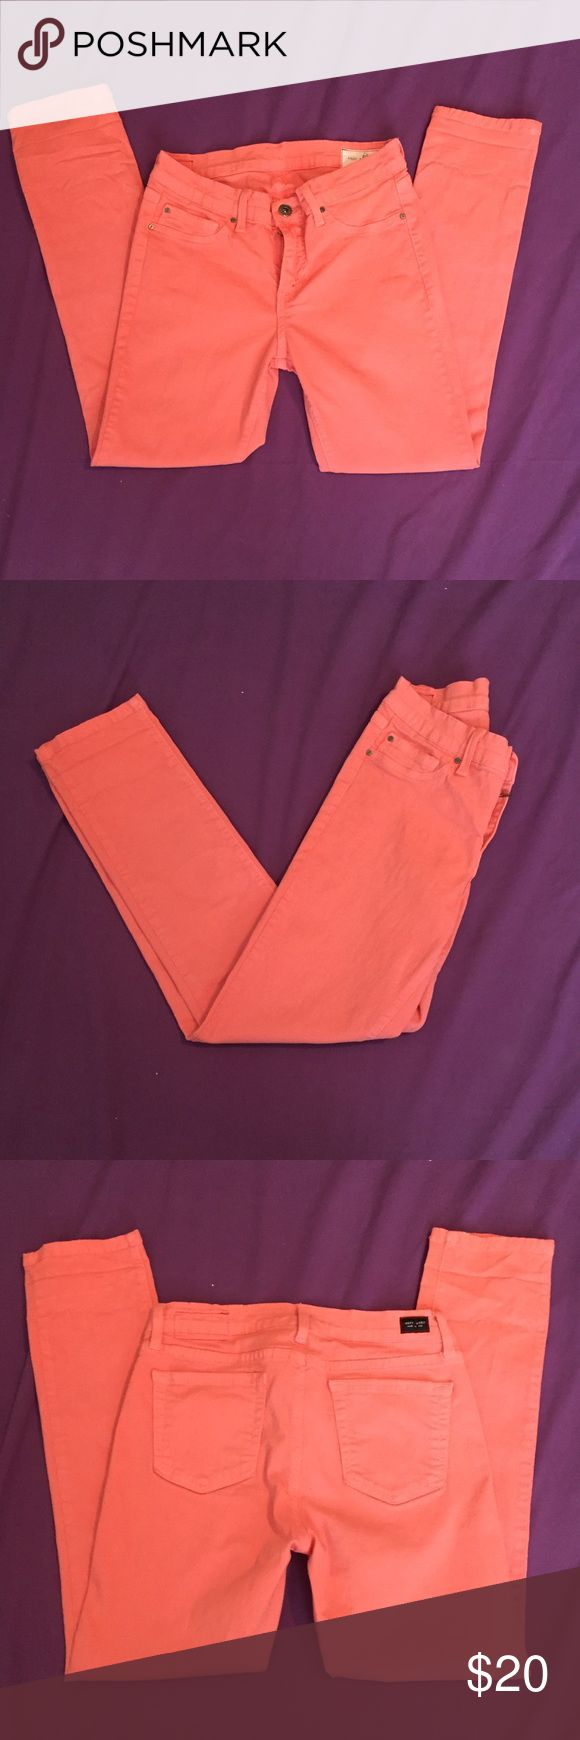 Coral colored skinny jeans Boutique style coral colored skinny jeans in size 27. In great condition. Perfect for spring!! Pants Skinny